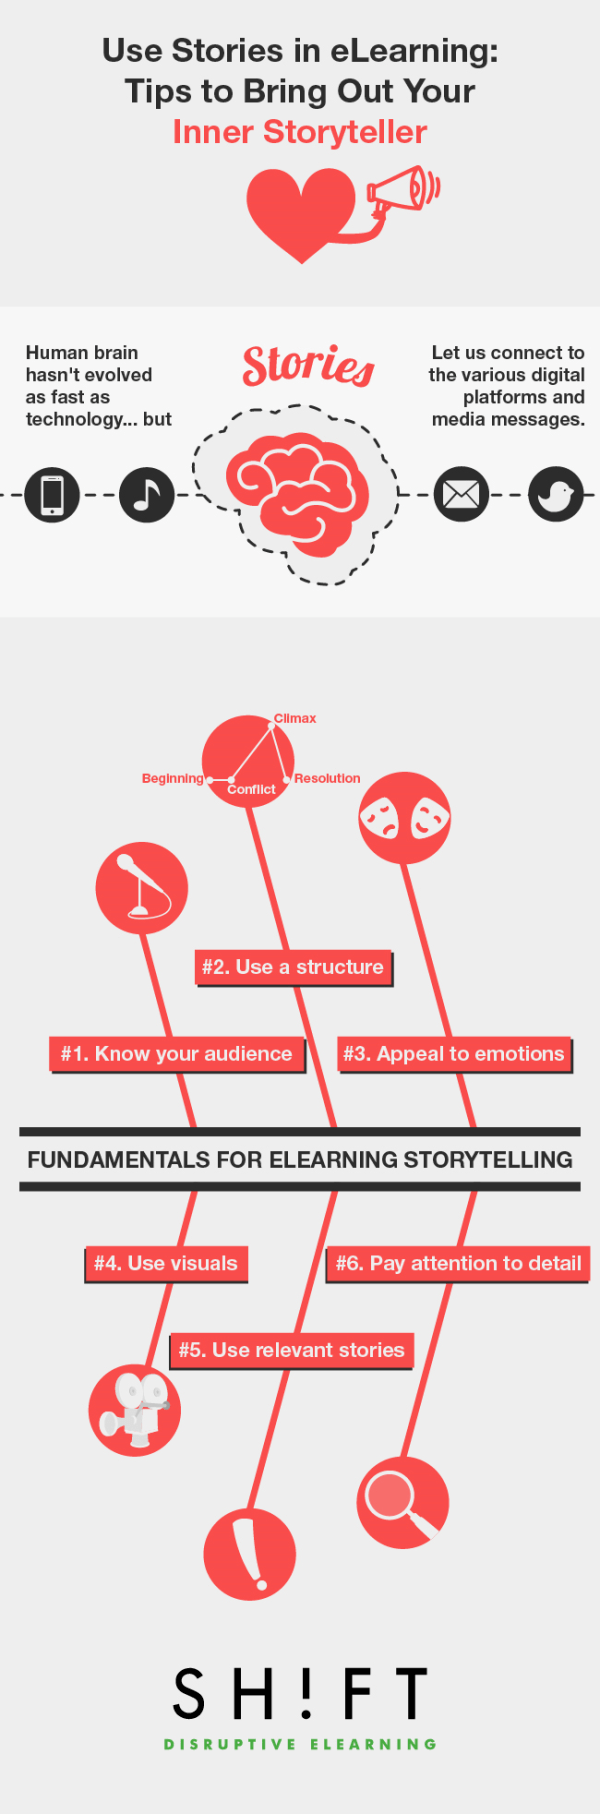 Bringing-Storytelling-into-eLearning-Infographic